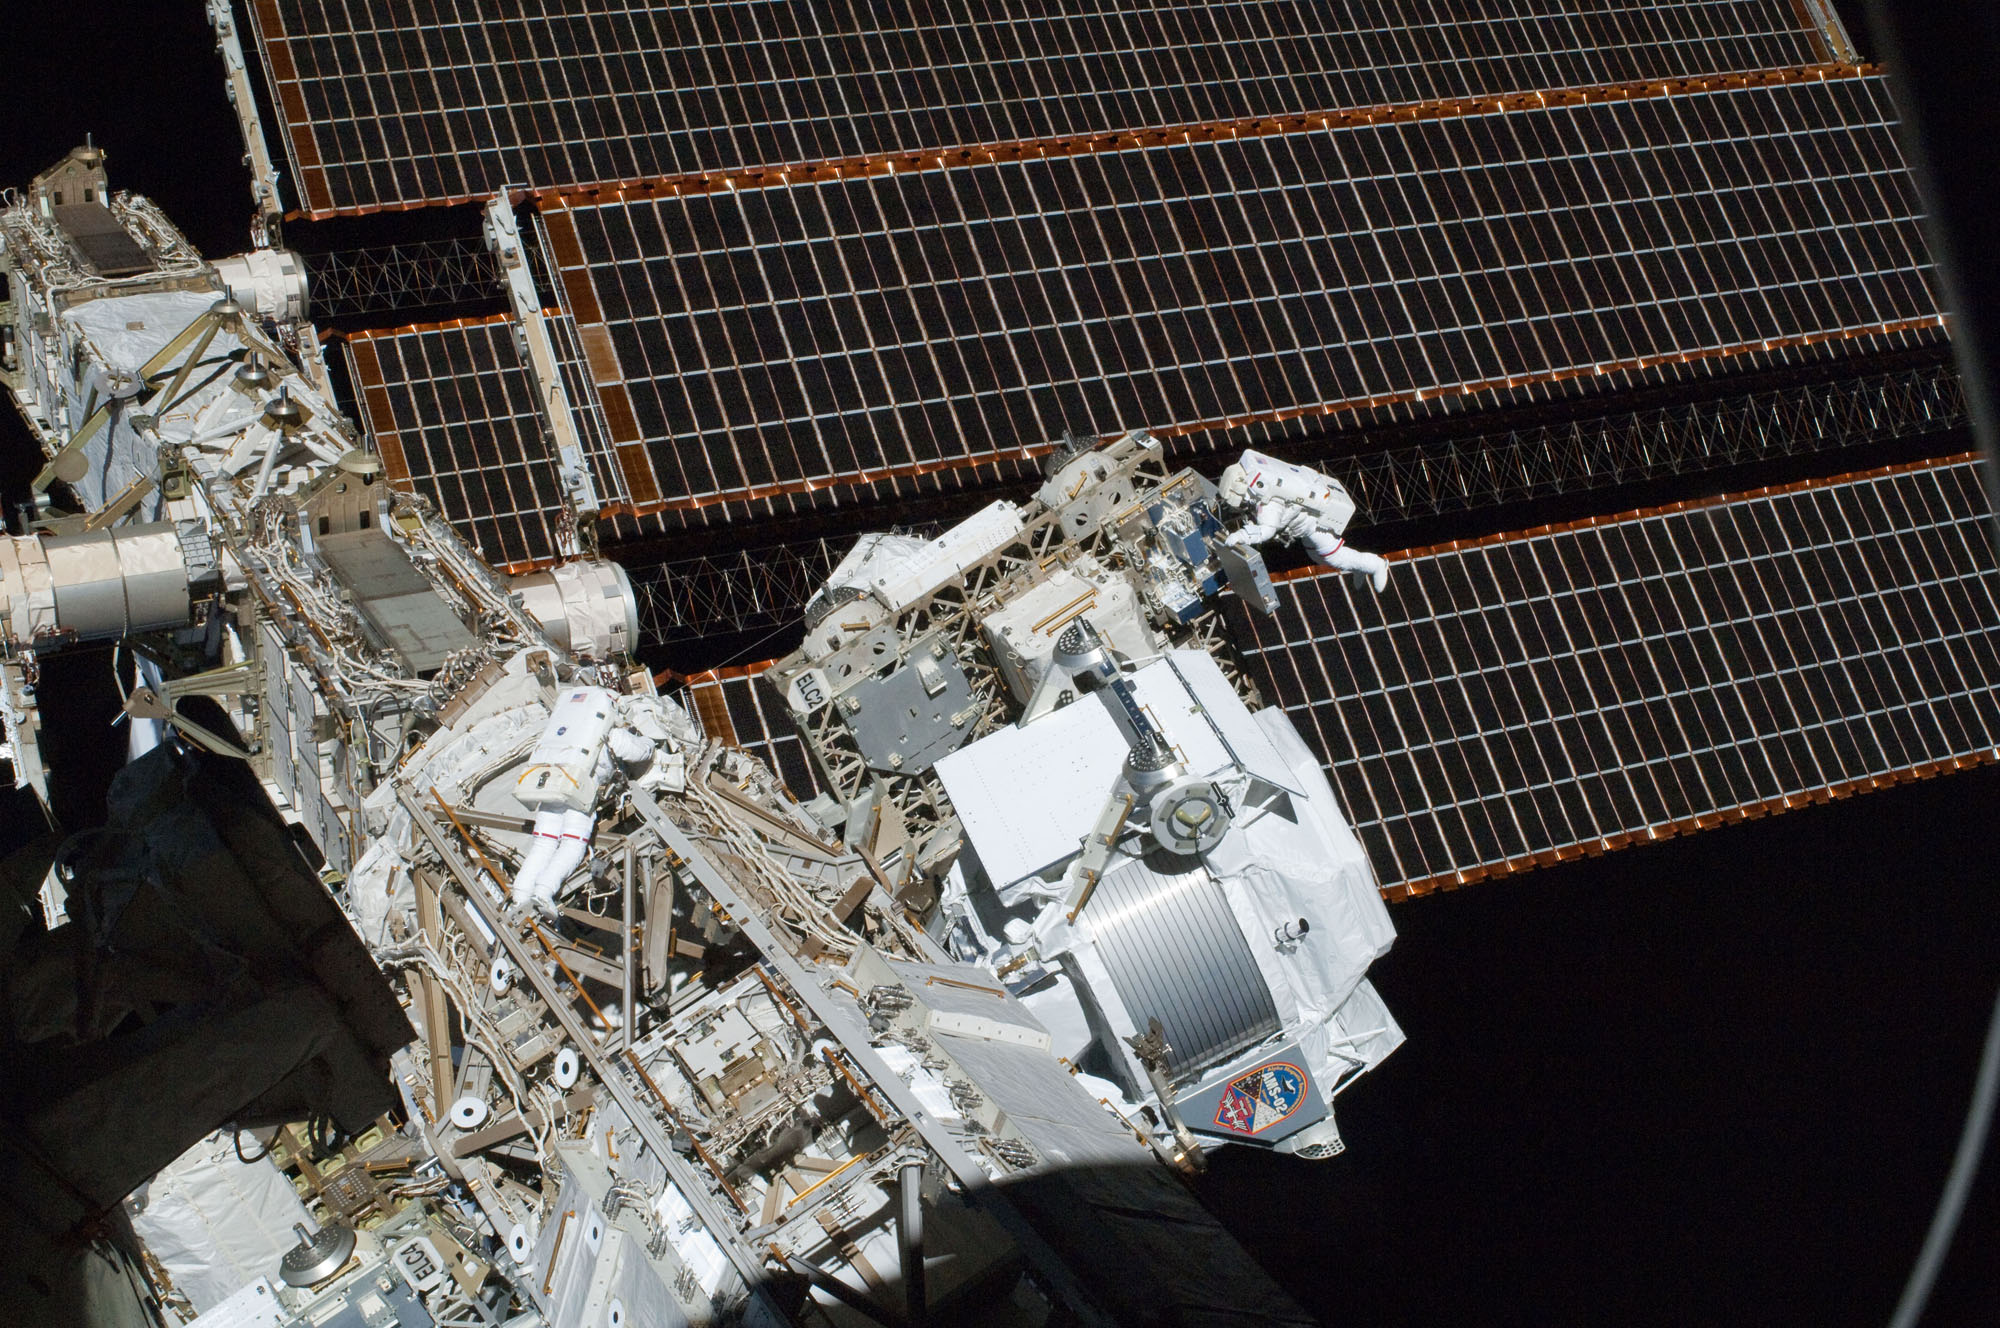 Spacewalk Perspective